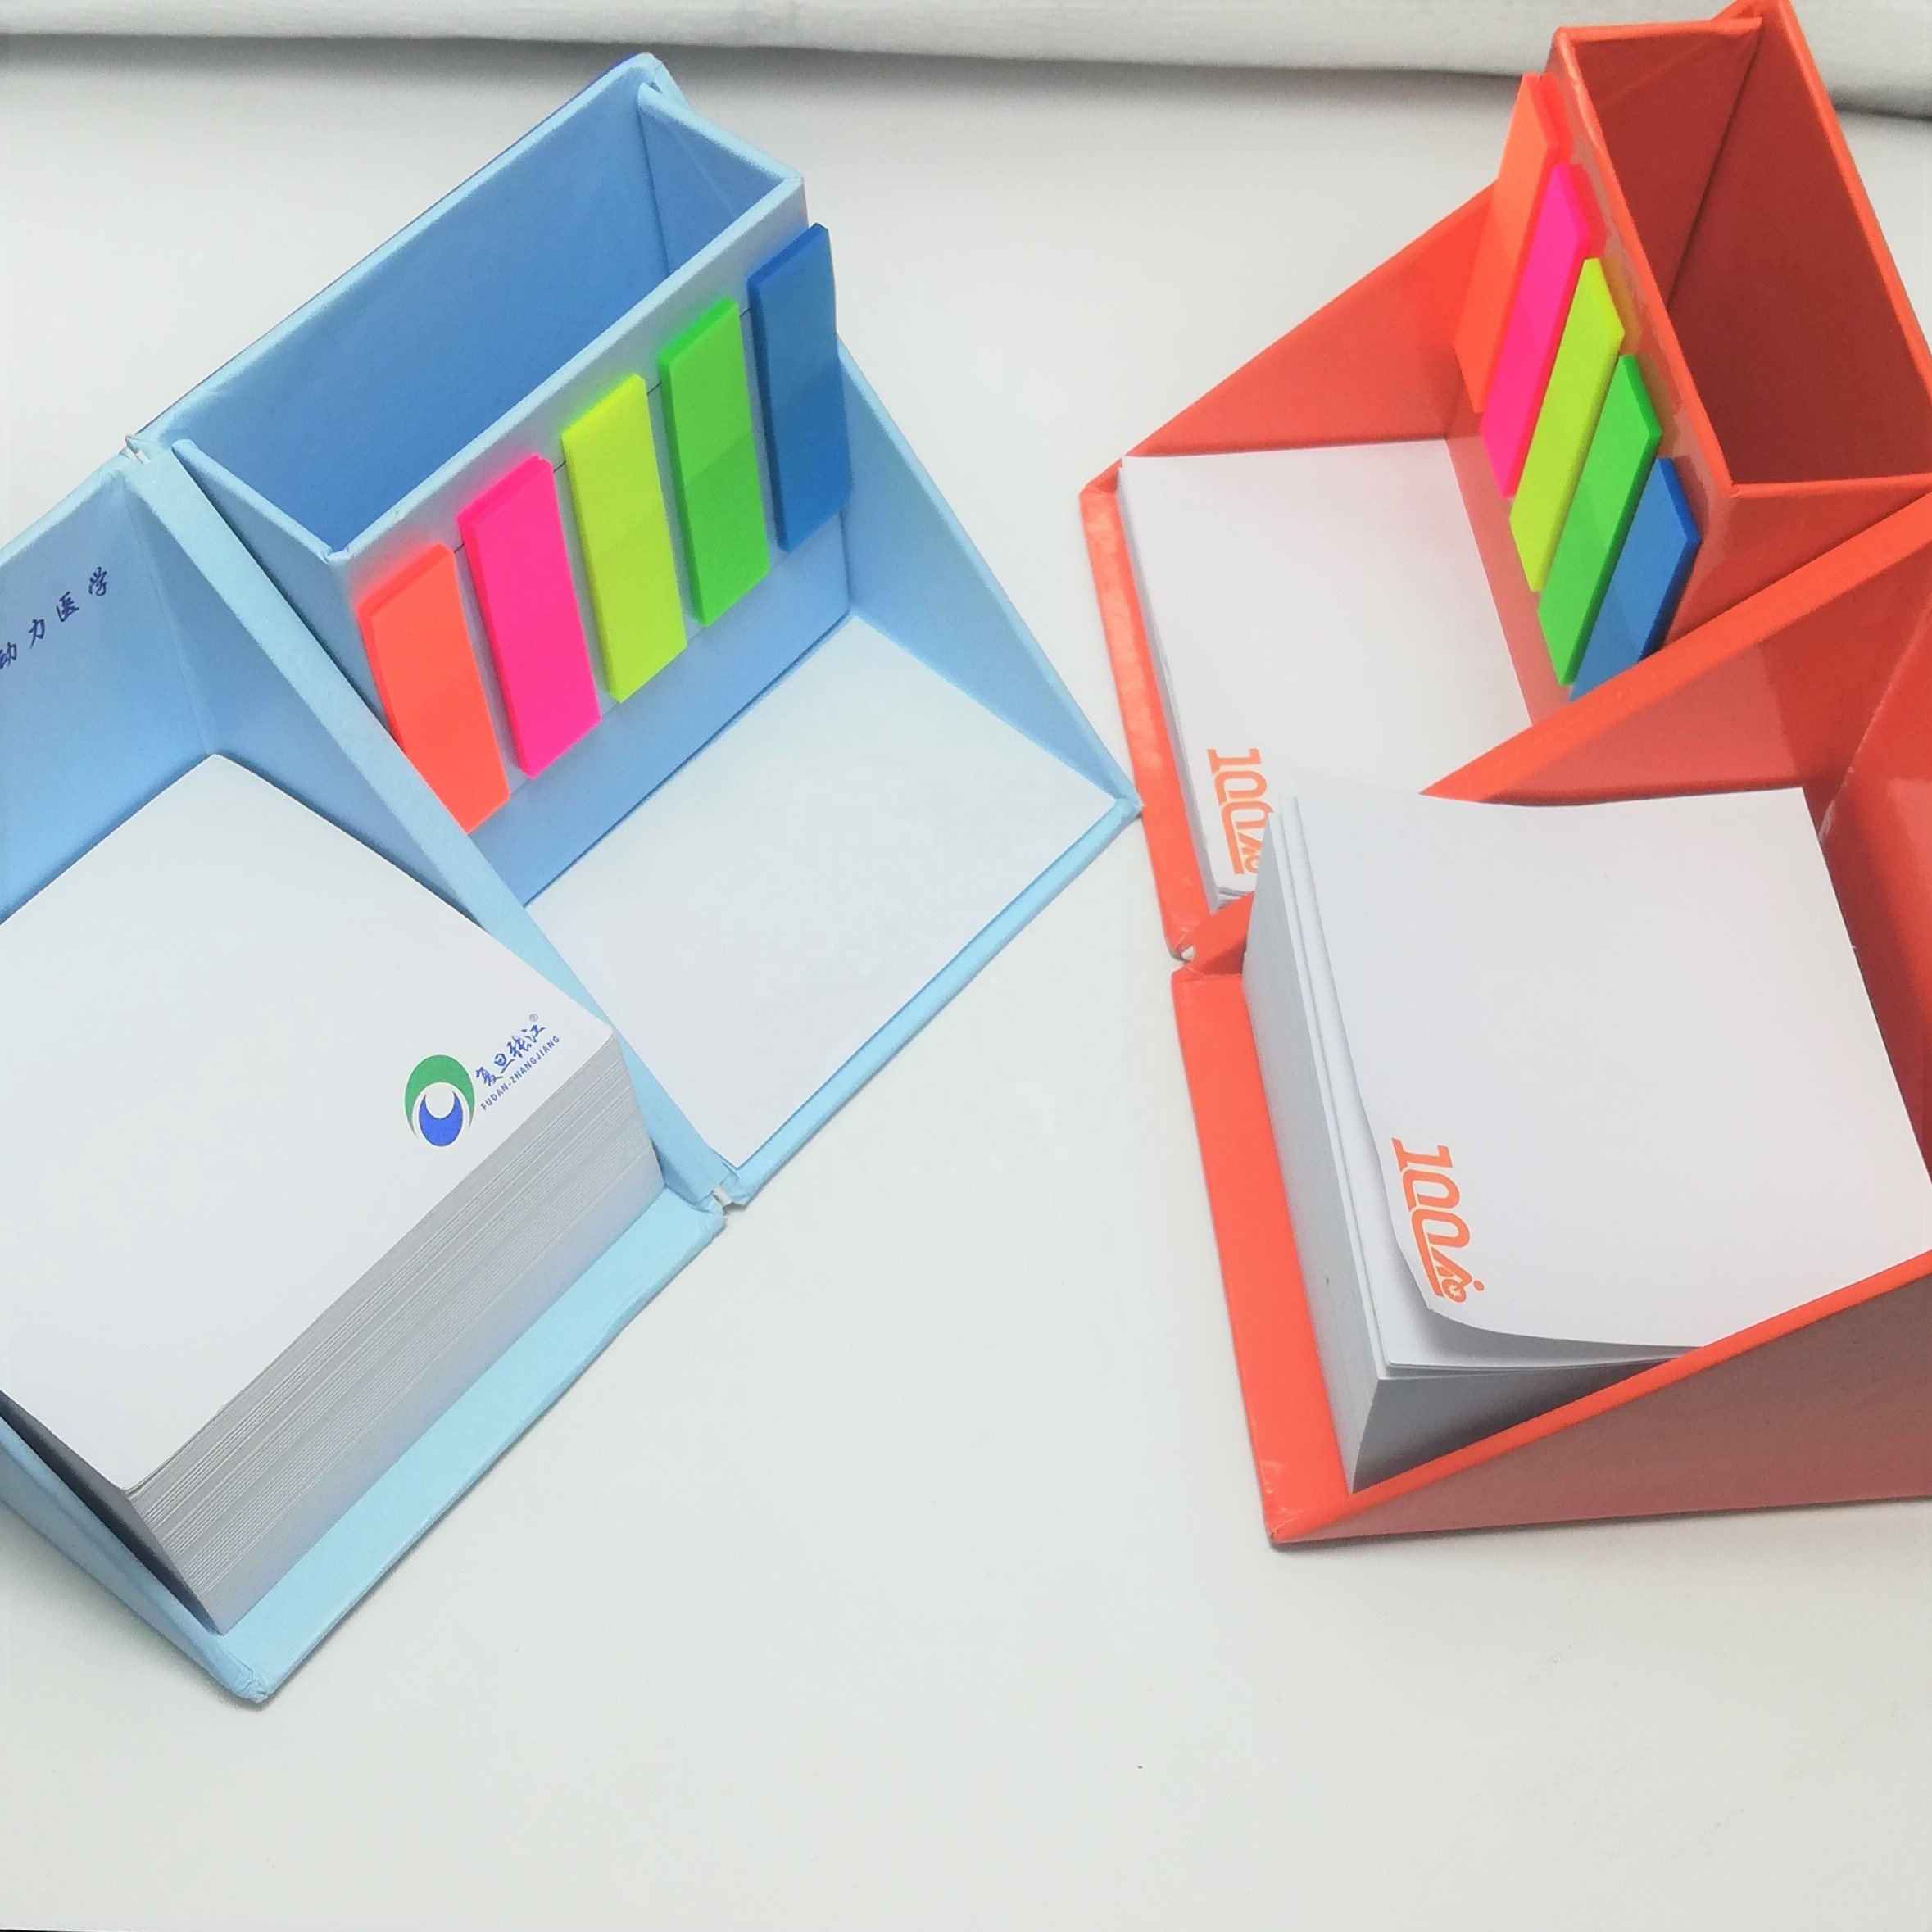 Magische kubus briefpapier sticky notes/promotionele gepersonaliseerde memo pad/